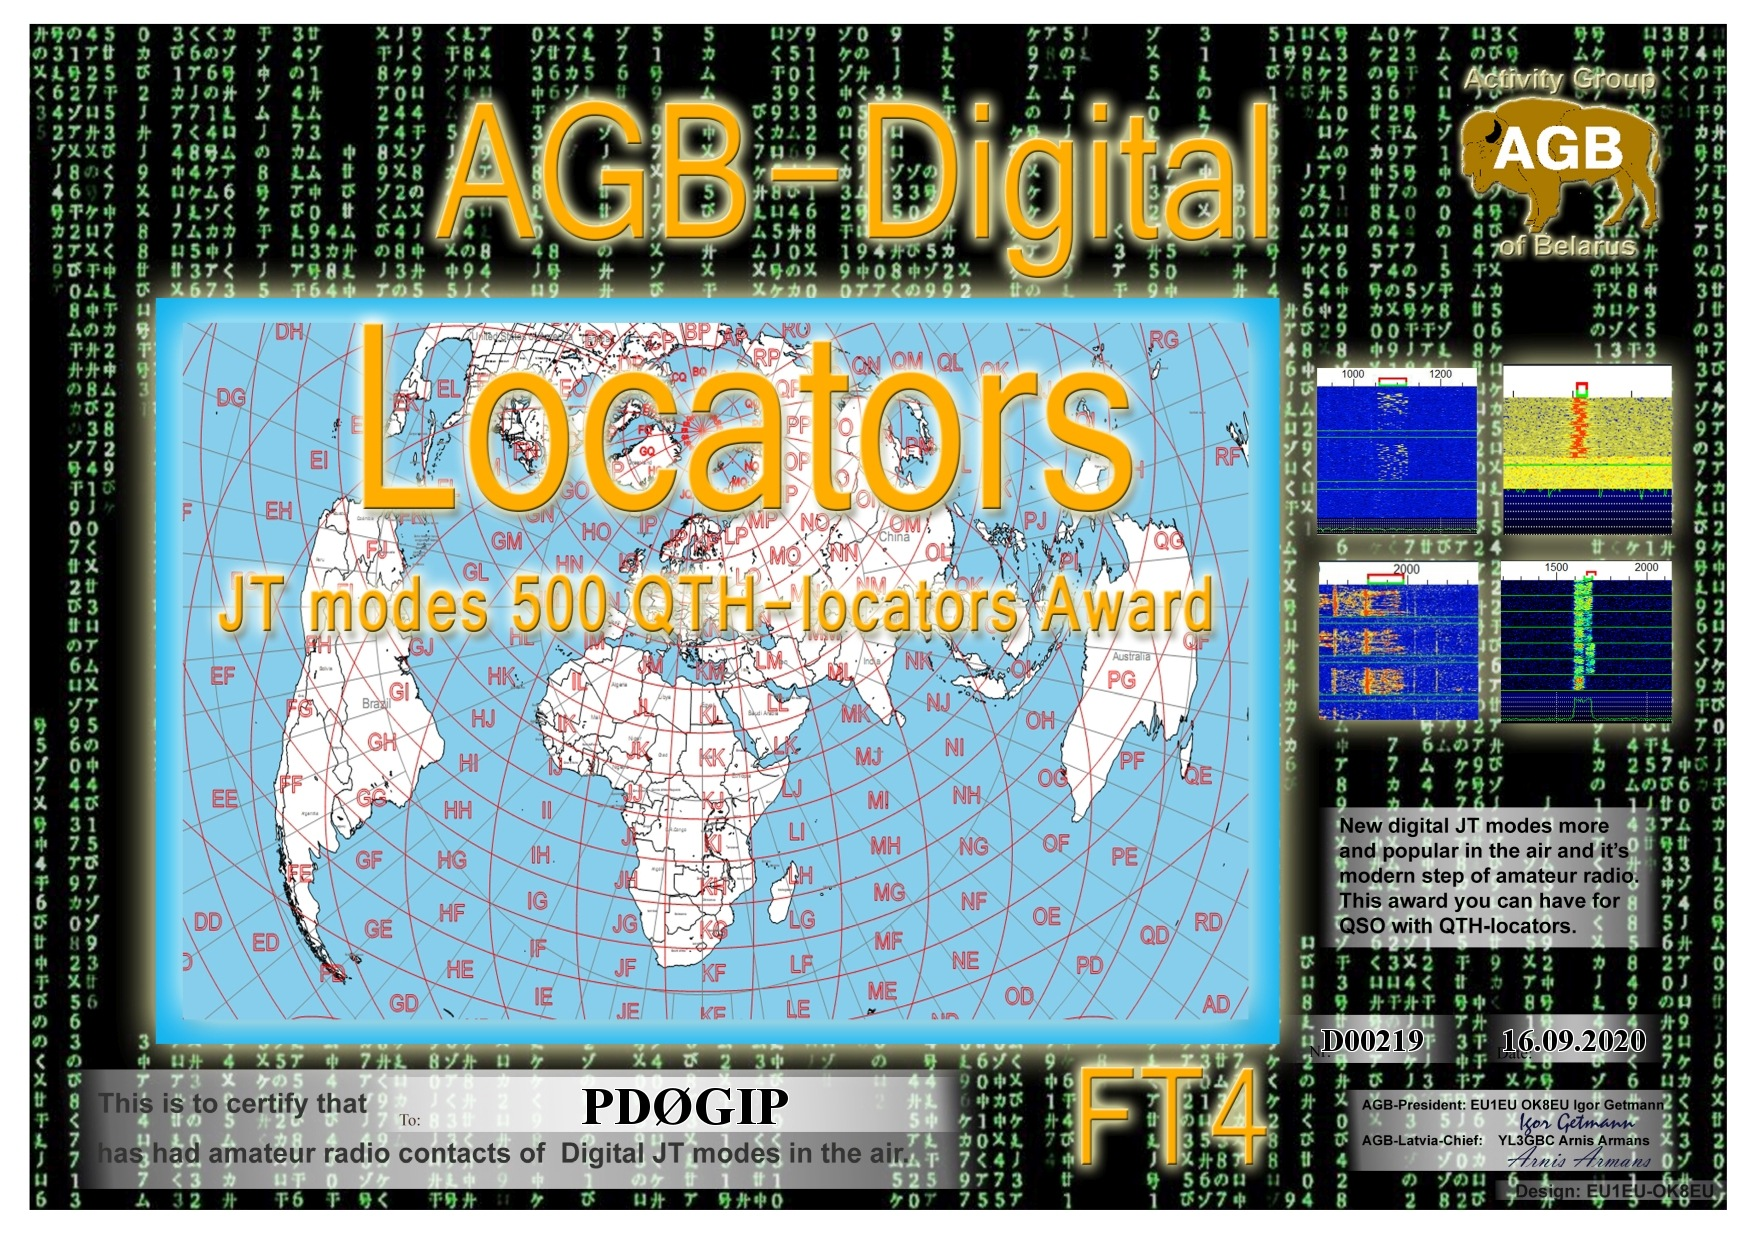 PD0GIP LOCATORS FT4 500 AGB